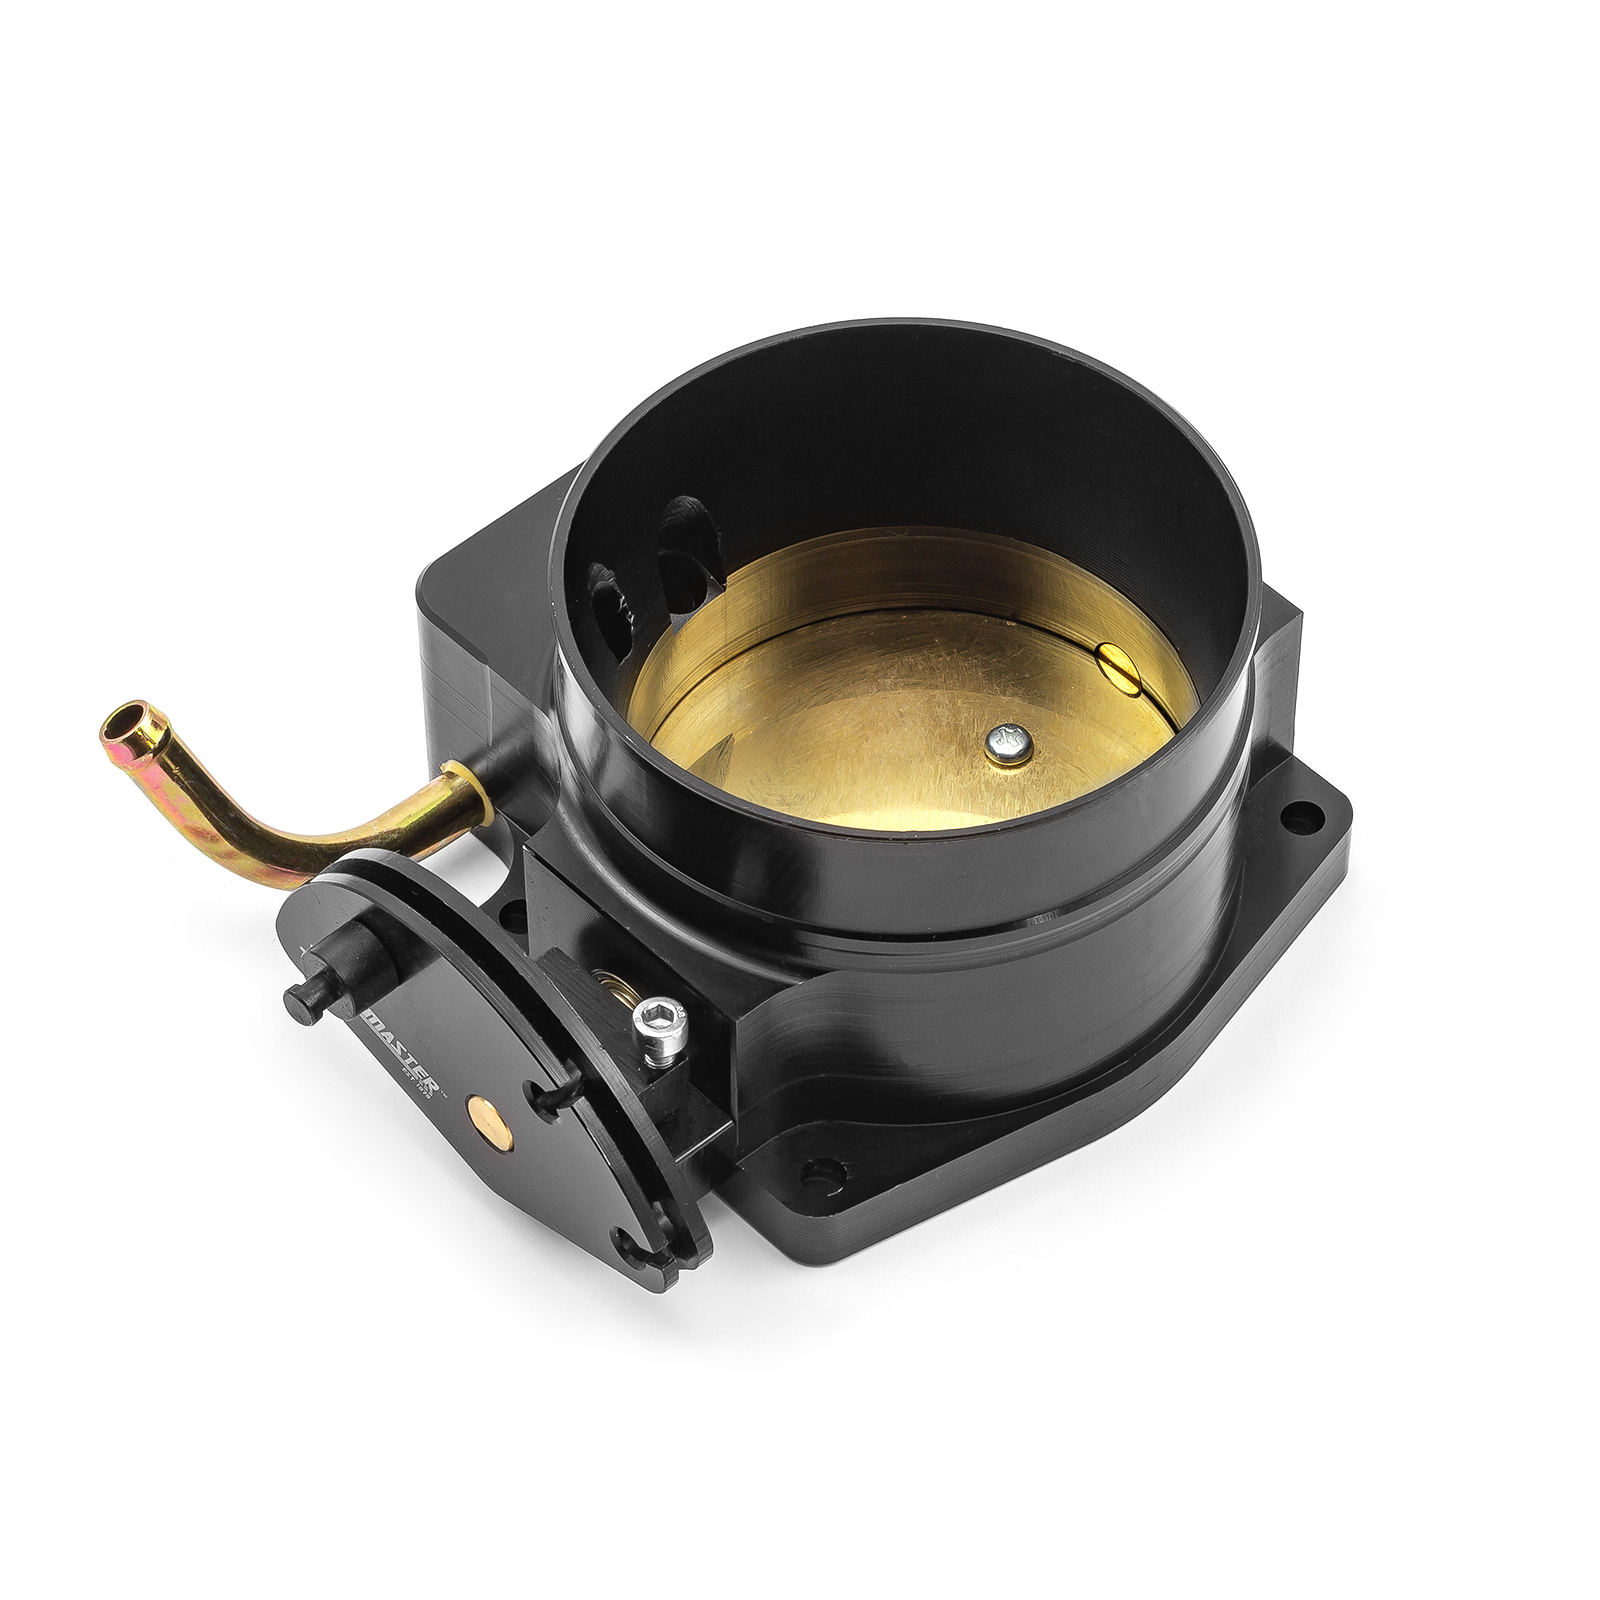 90 mm LS2 4 Bolt High Flow Throttle Body Black